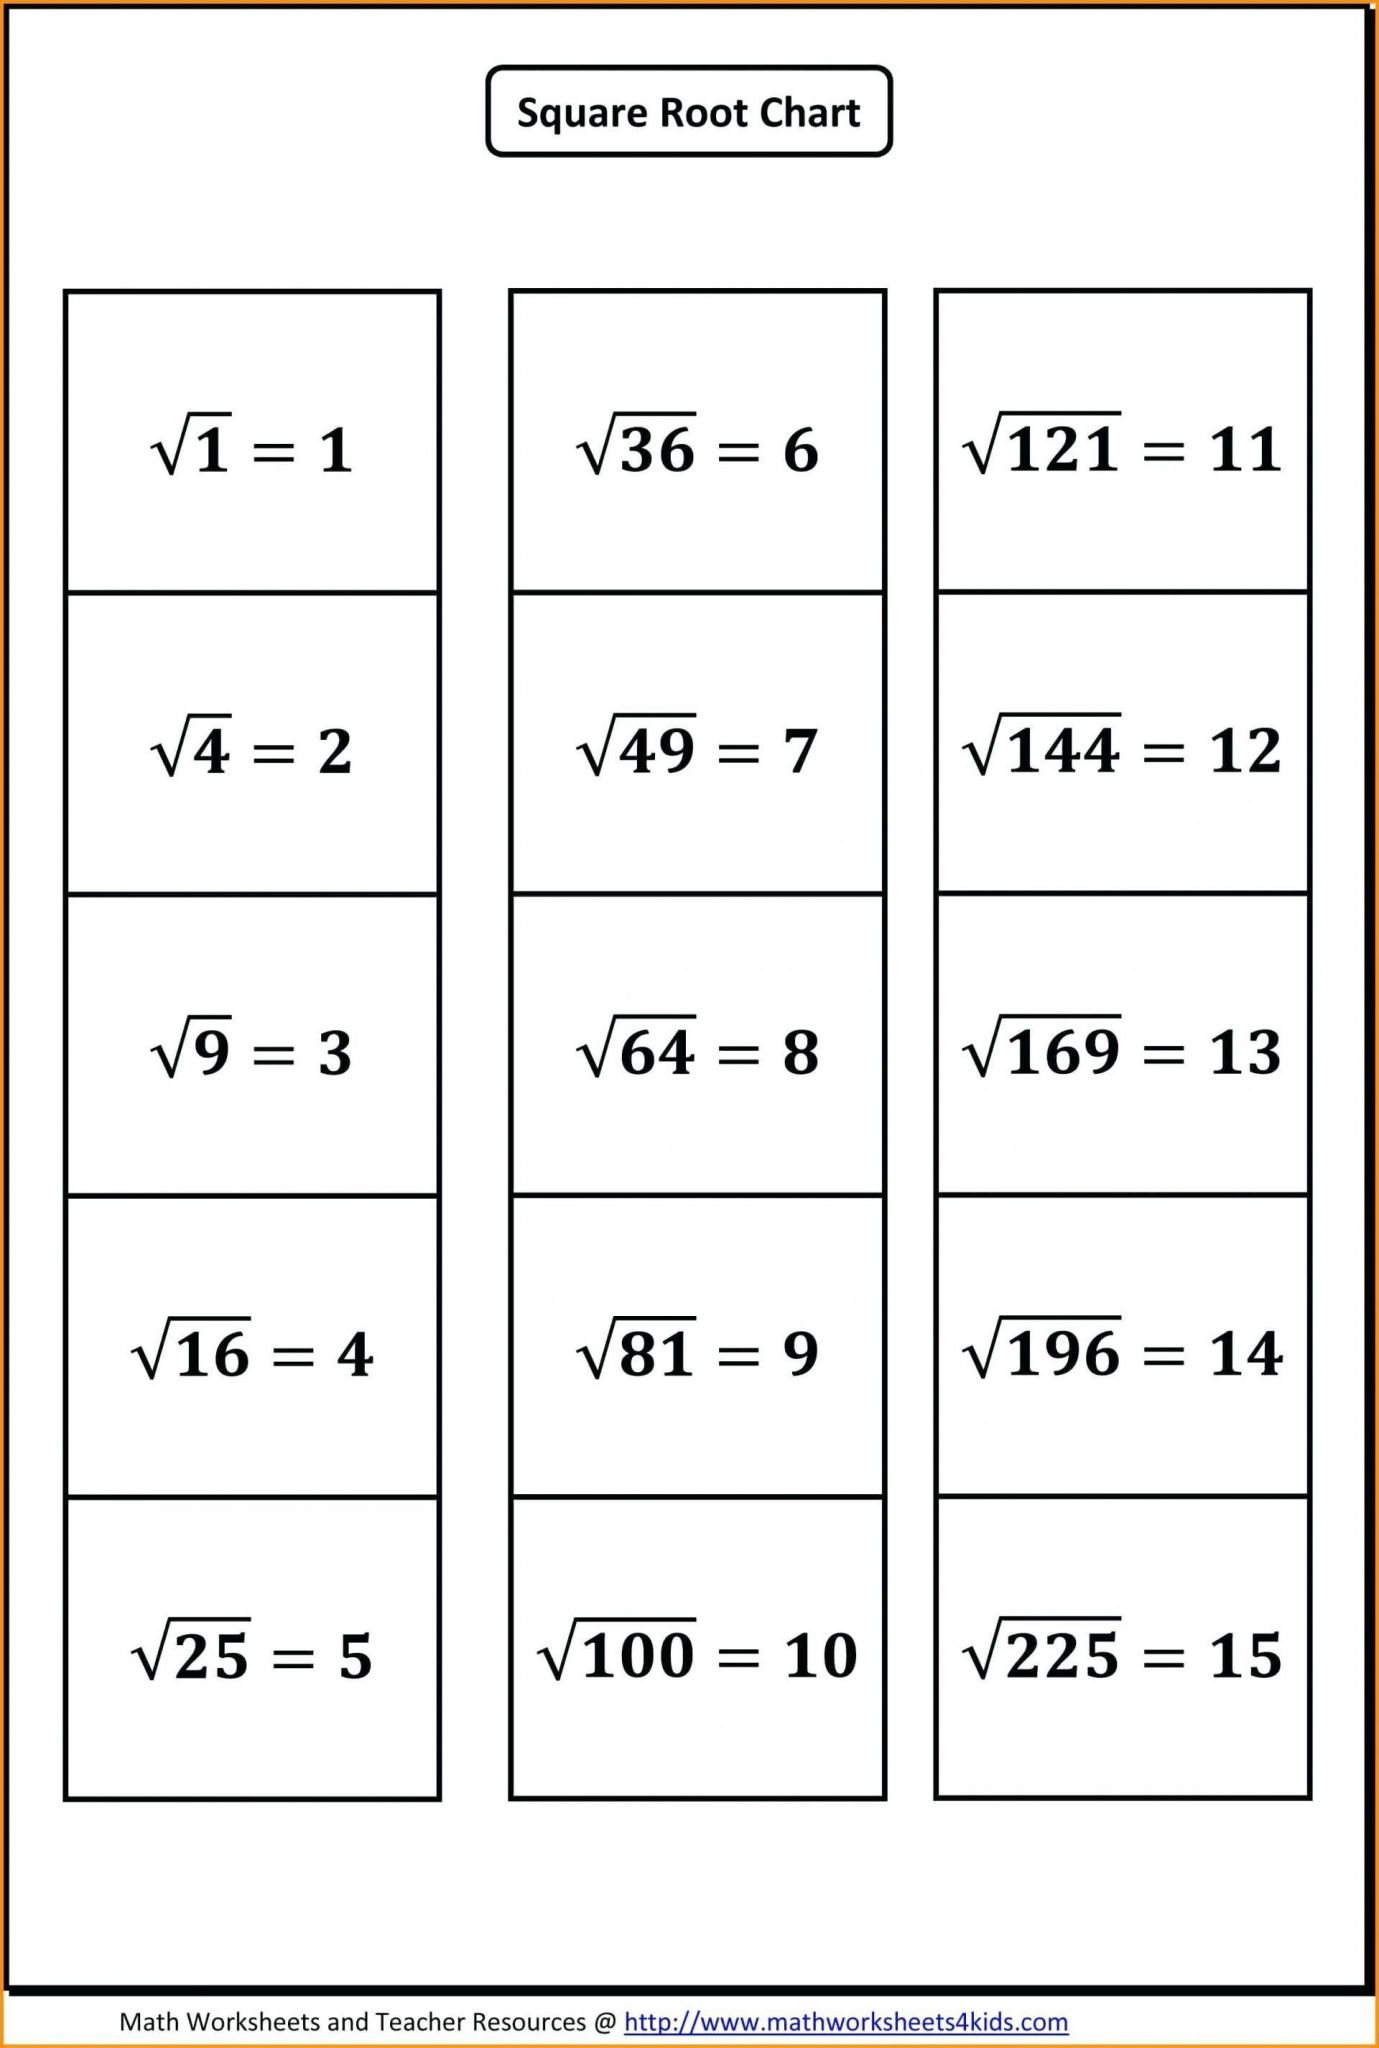 Square Roots Of Negative Numbers Worksheet